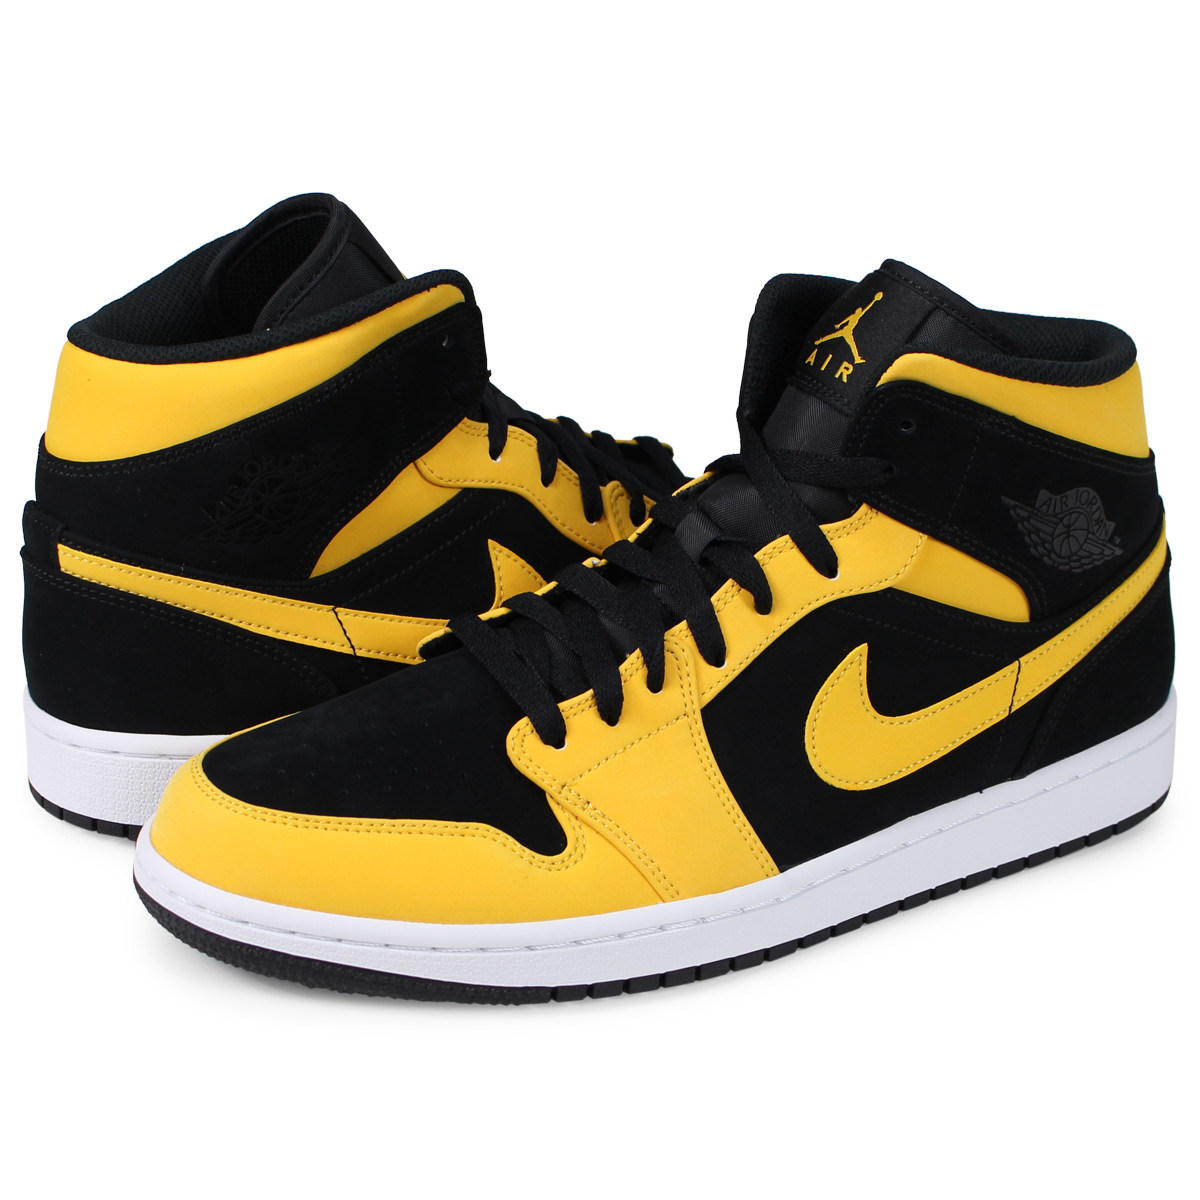 31f21d96b848 ALLSPORTS  Nike NIKE Air Jordan 1 sneakers men AIR JORDAN 1 MID ...